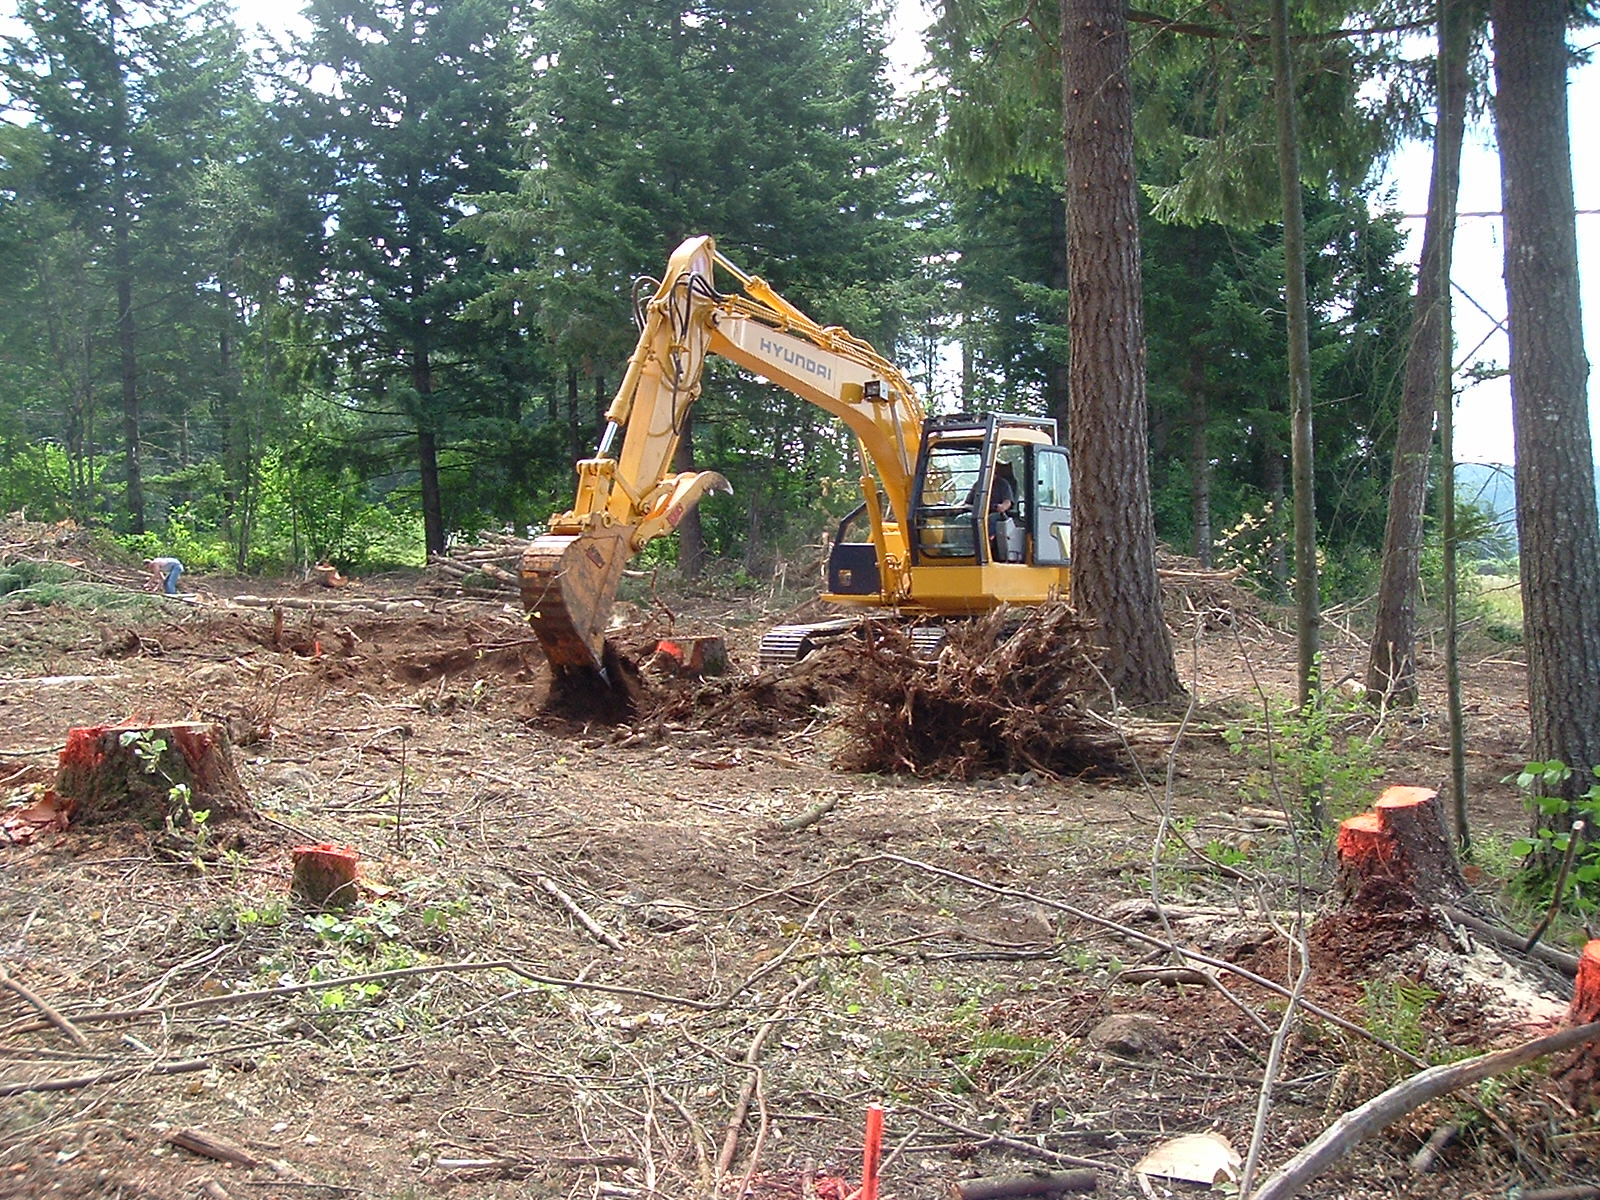 land clearing Harry fox land clearing, land clearing detroit, michigan land clearing contractors,land clearing michigan, texas land clearing,houston land clearing lot land clearing.